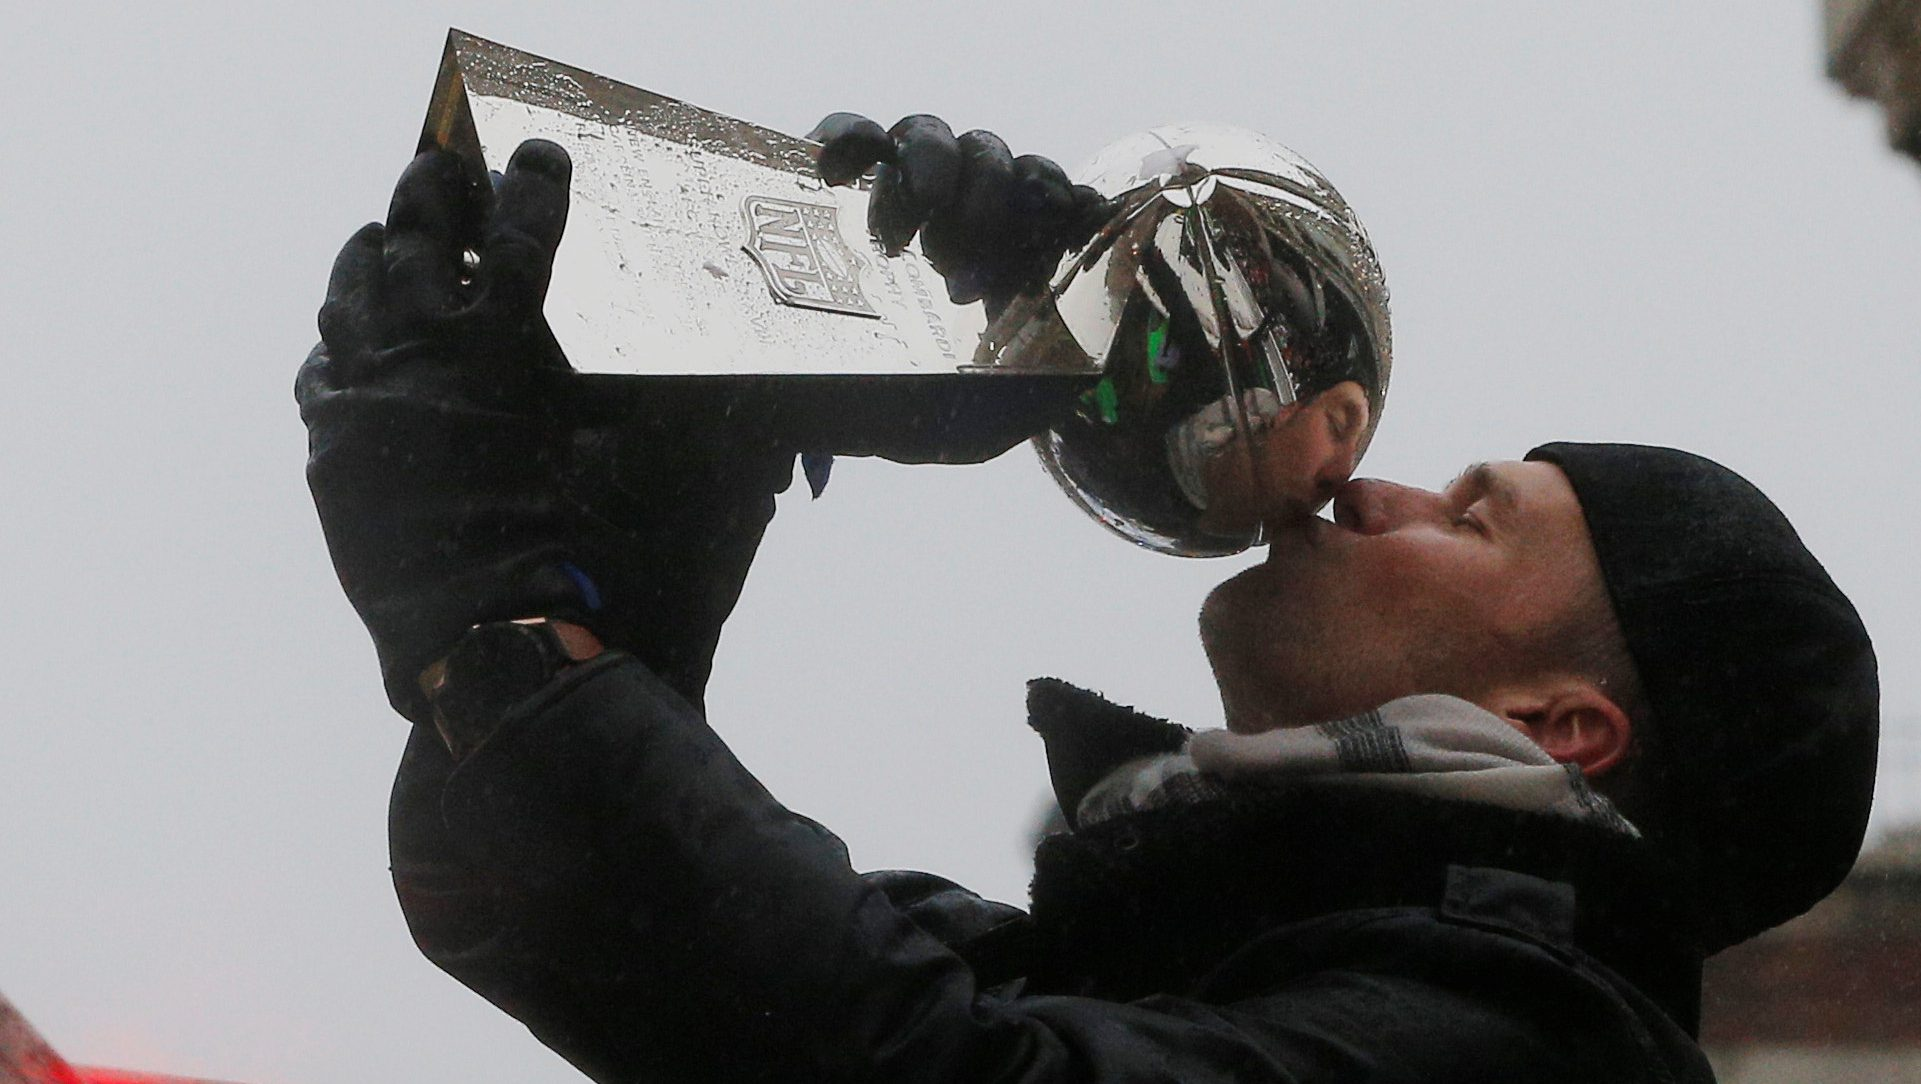 New England Patriots quarterback Tom Brady kisses one of the team's five Vince Lombardi trophies during their victory parade through the streets of Boston after winning Super Bowl LI, in Boston, Massachusetts, U.S. February 7, 2017.